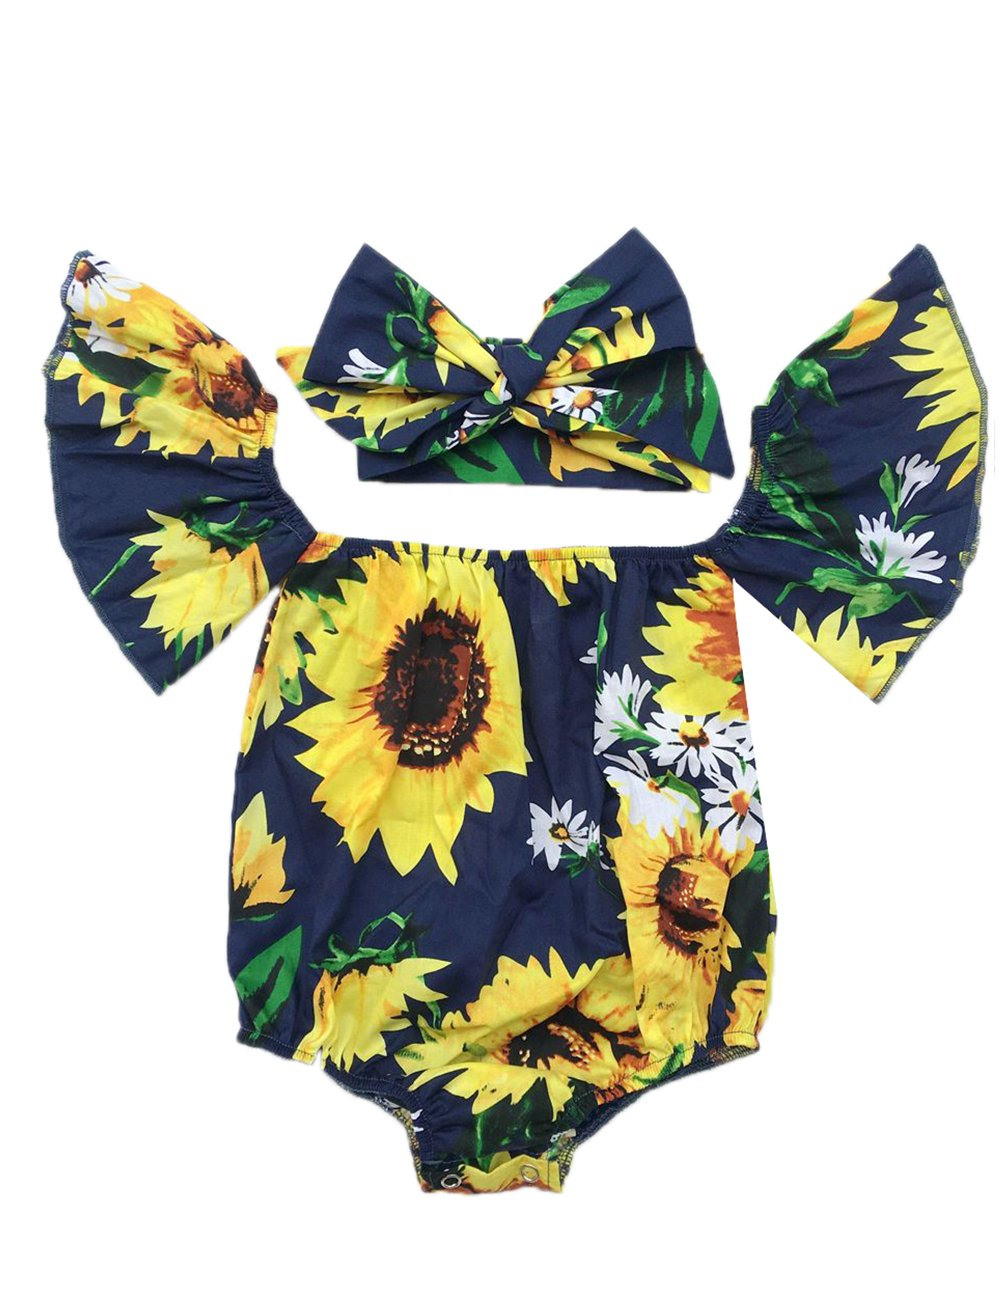 iClosam Baby Girl's Floral Print Ruffles Off Shoulder Romper Summer Clothes with Headband